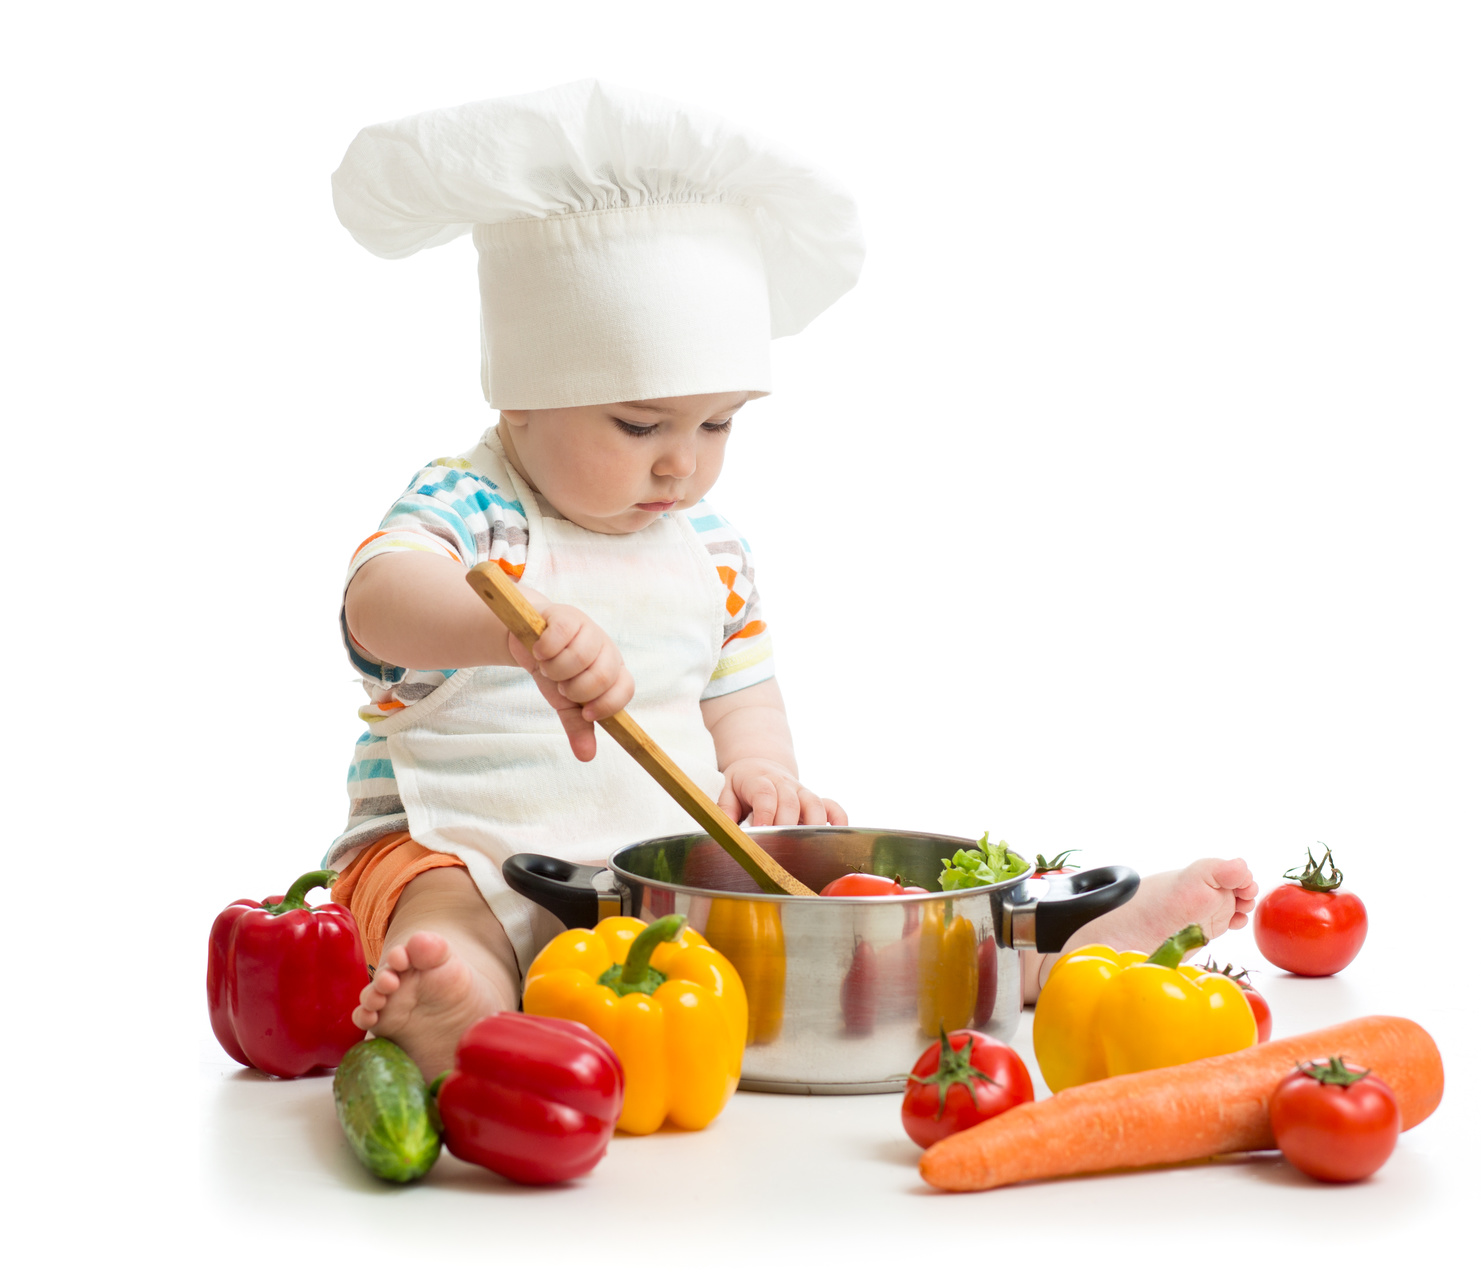 How Nutrition Impacts Early Childhood Development